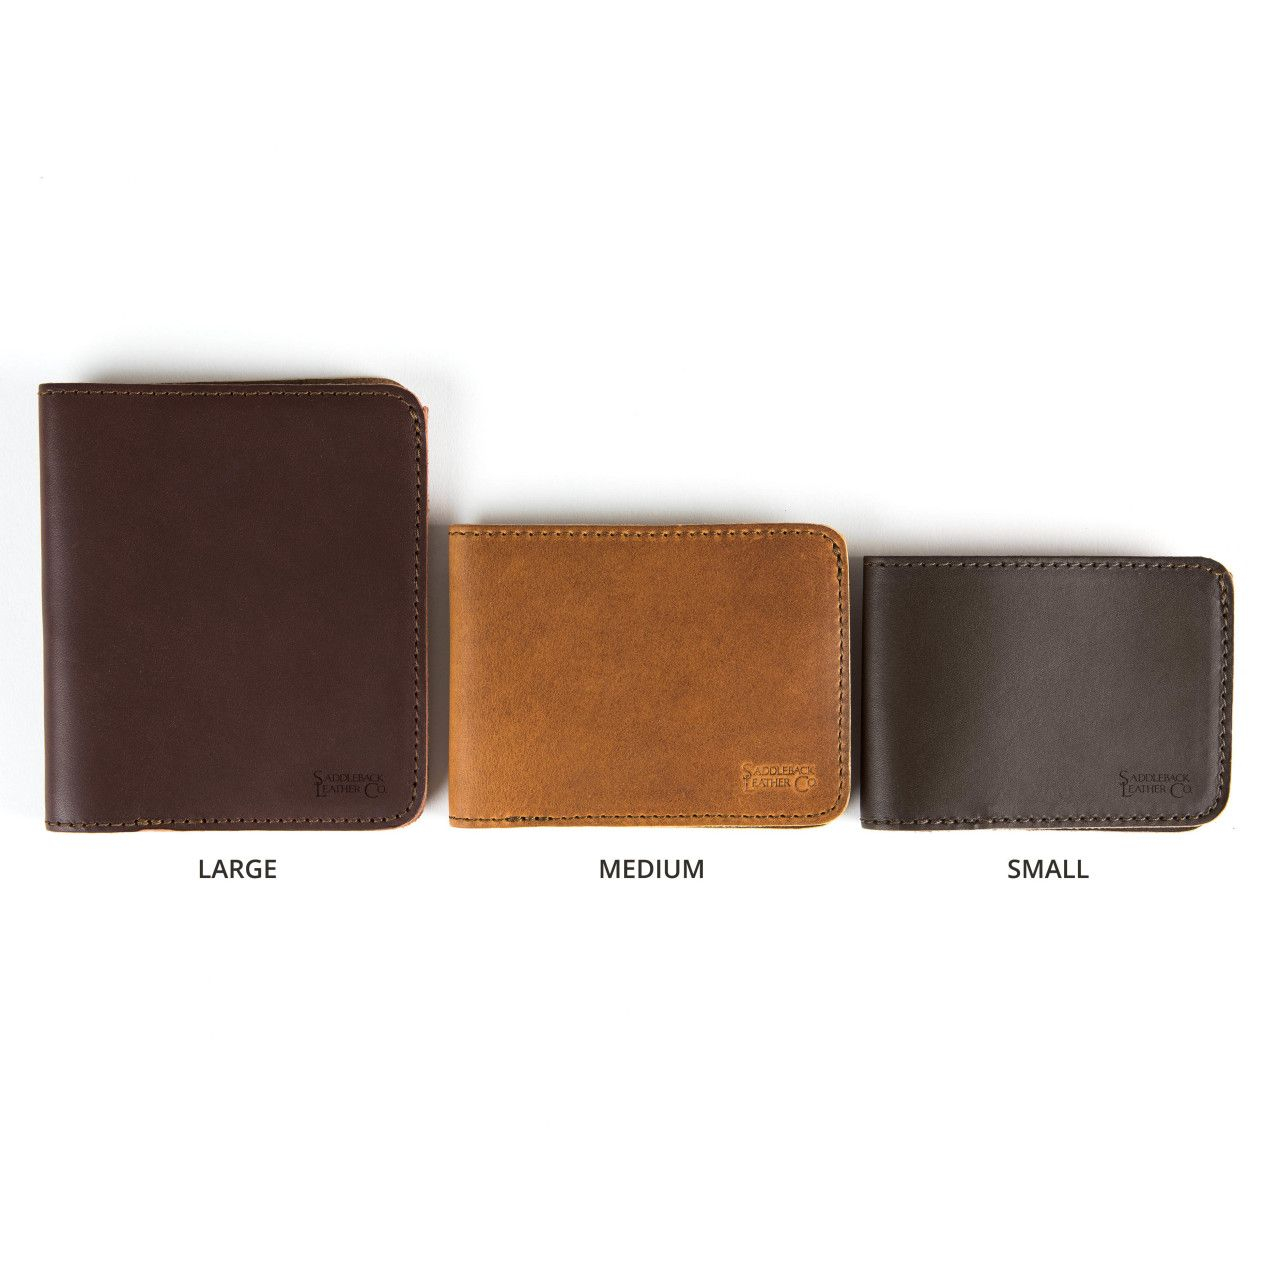 large leather bifold wallet large in leather